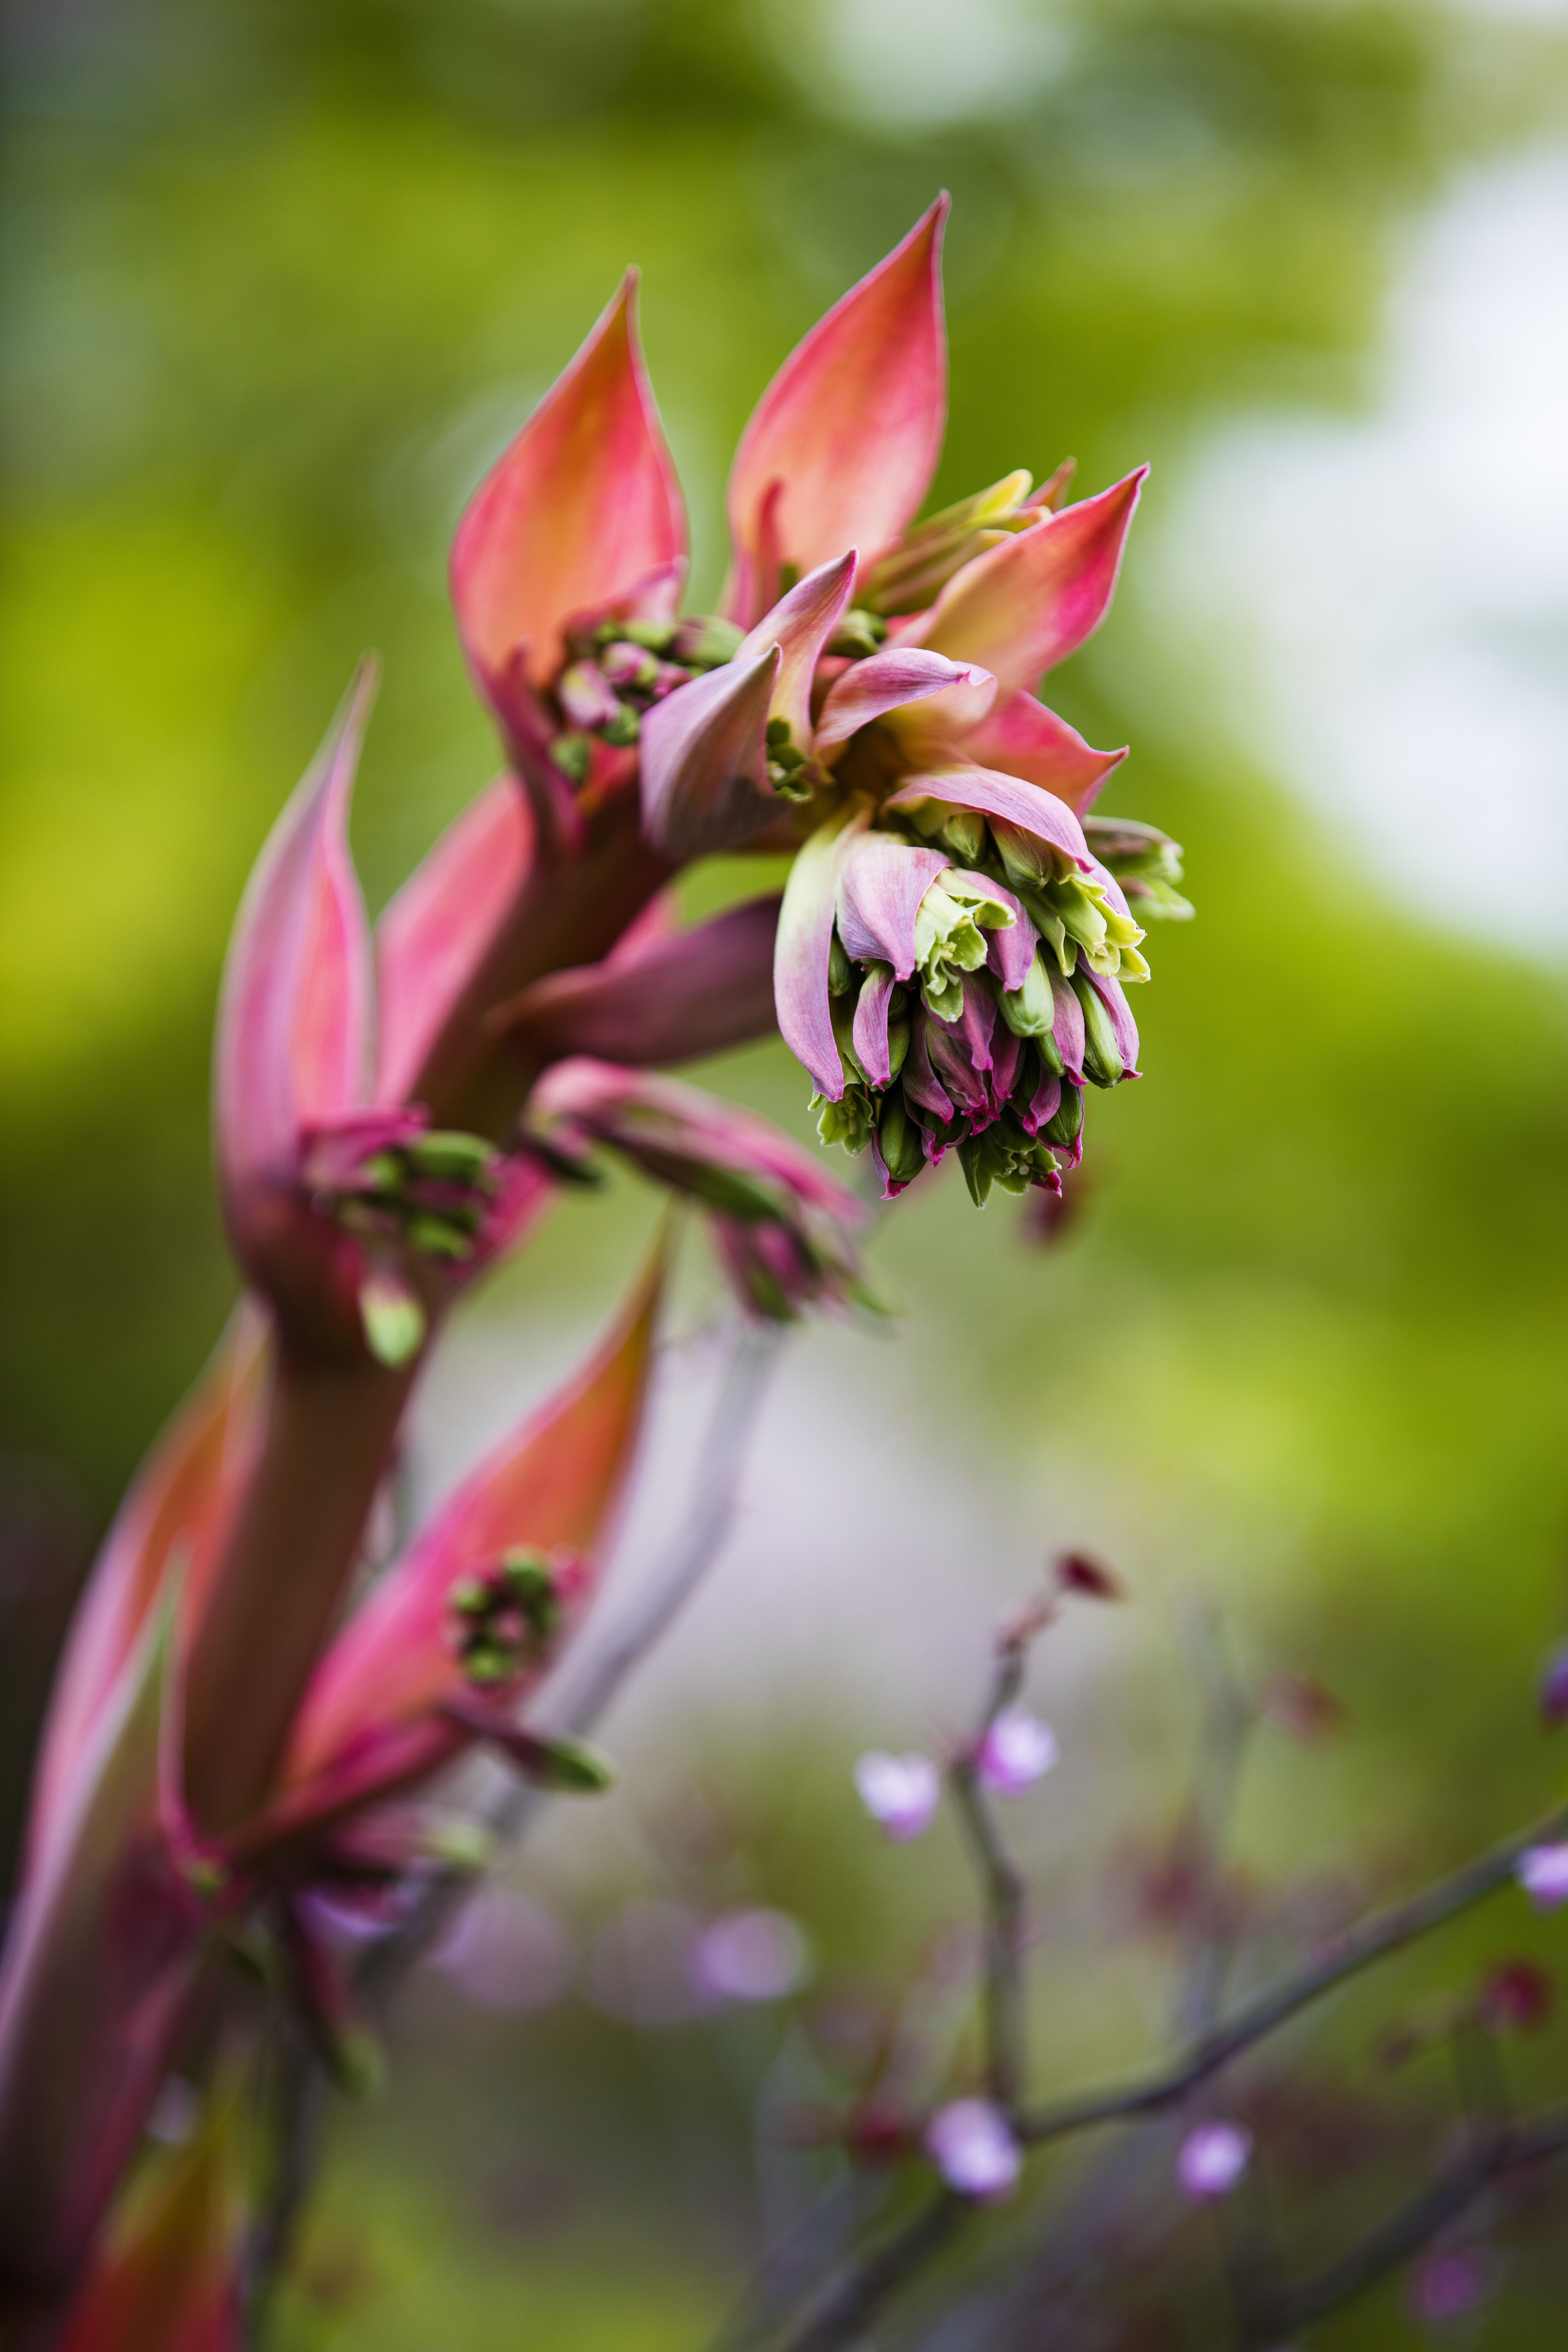 A Vibrant Red Mexican Fire Lily Growing In A Lush Restored Inner